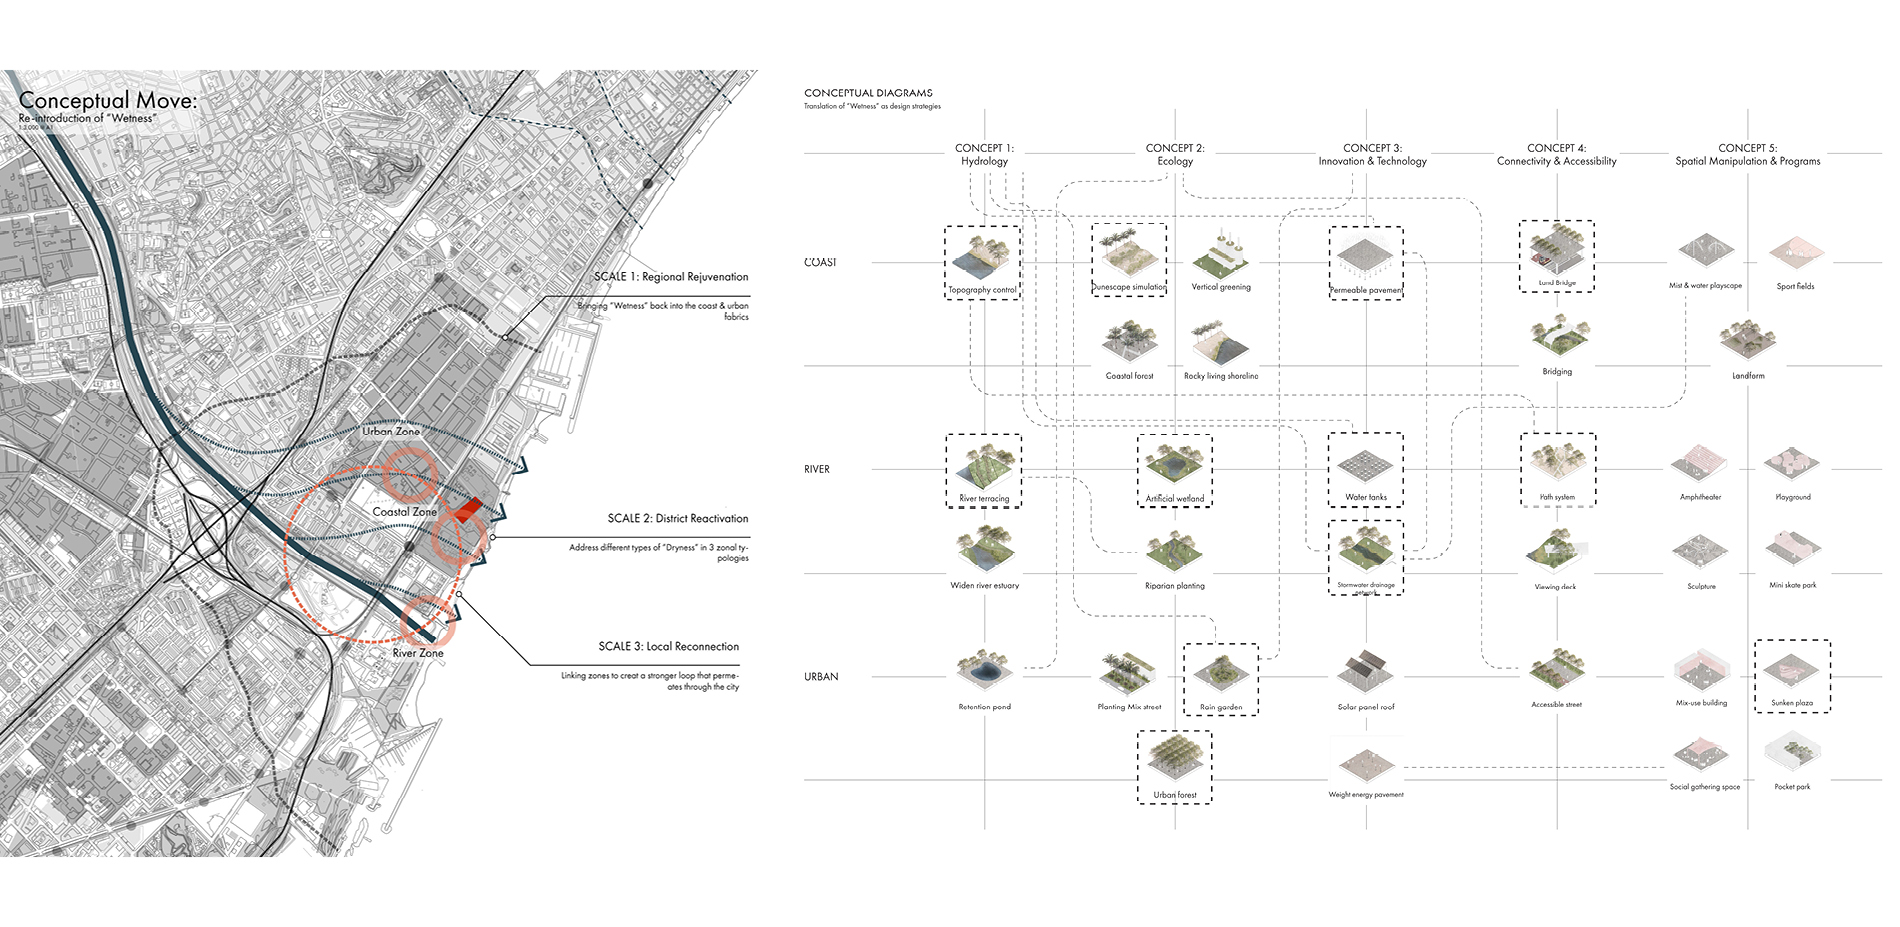 Conceptual Move and Zonal Typologies